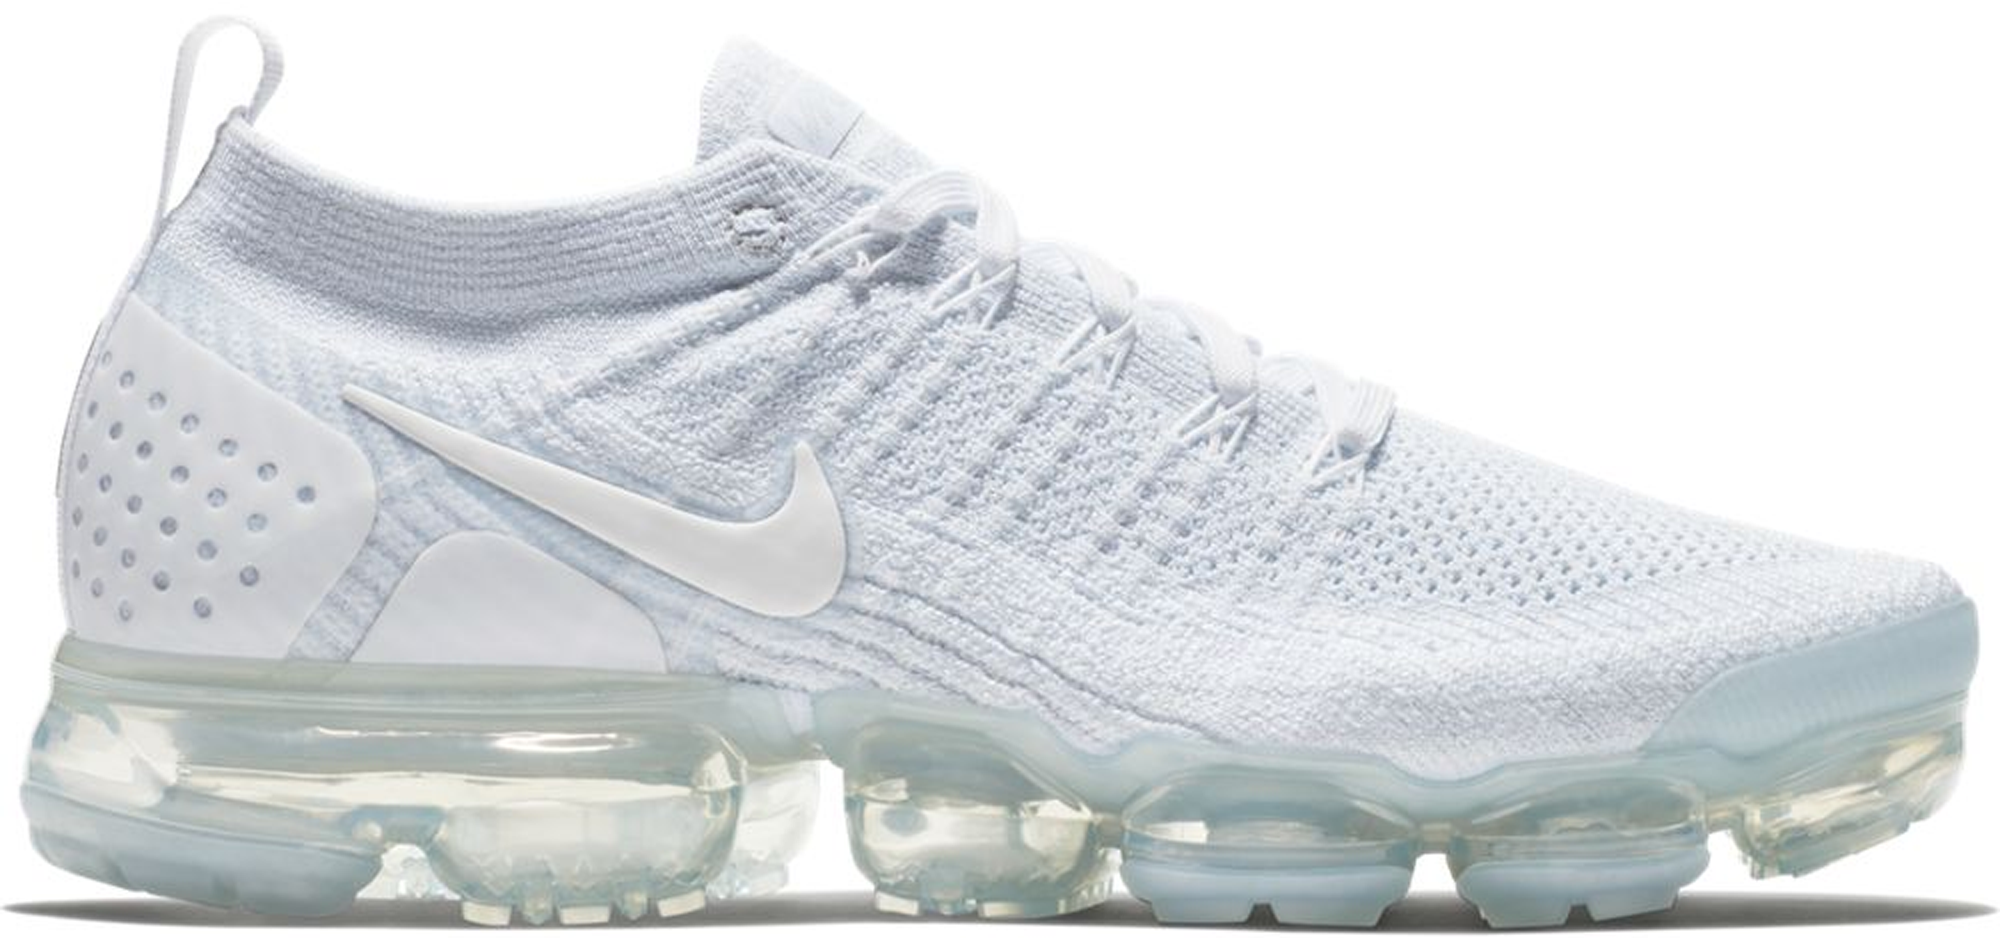 9af40f27 Nike Air VaporMax 2 White Pure Platinum - StockX News